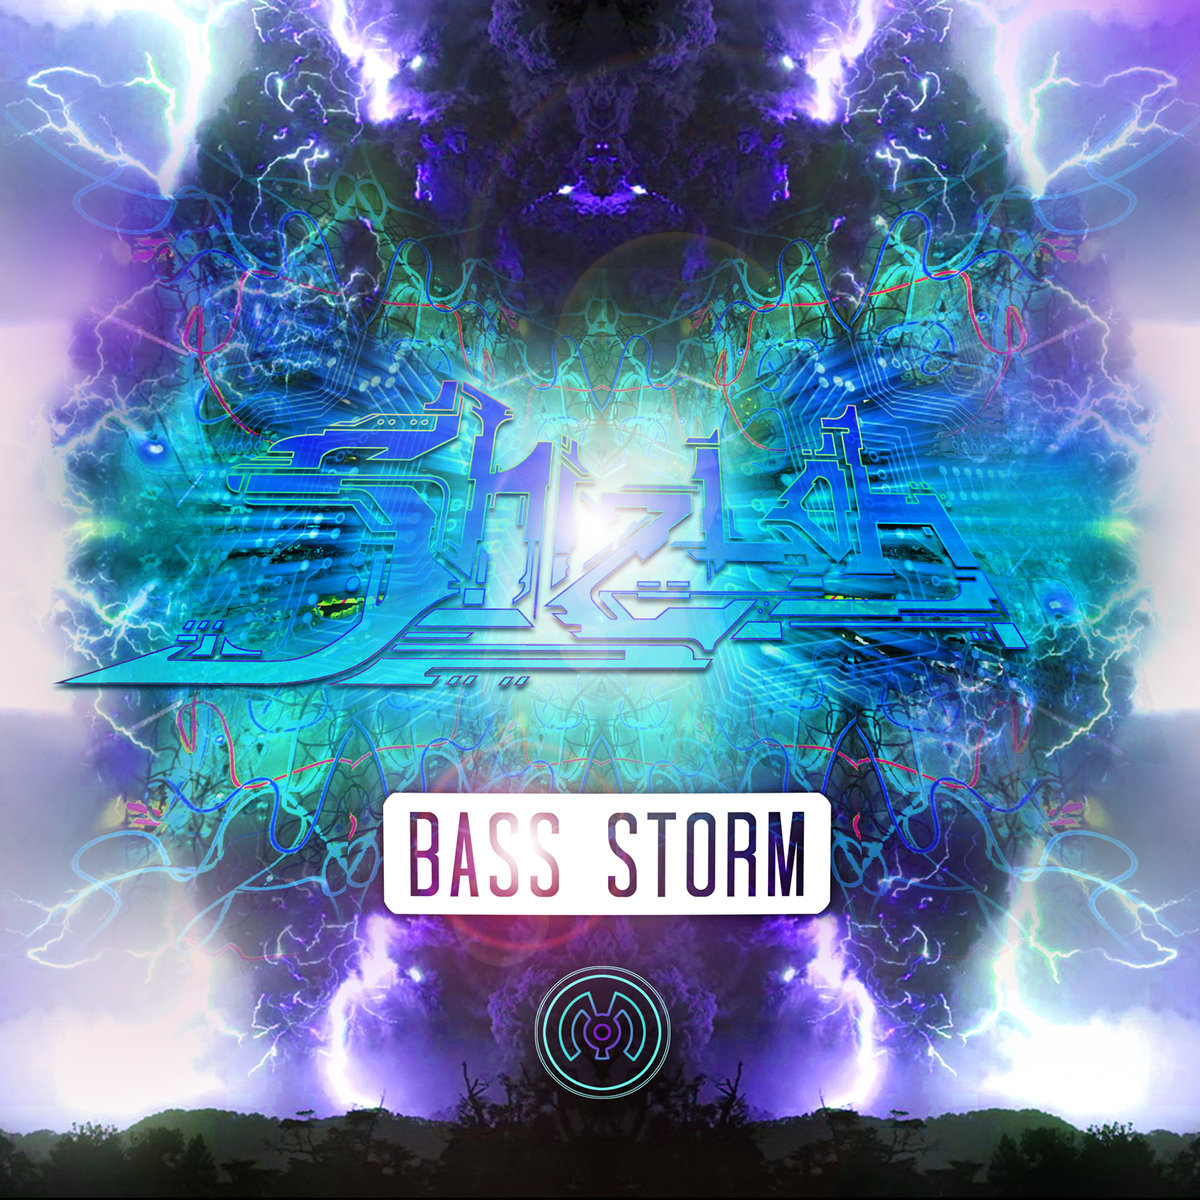 Shizloh - Drop Zone @ 'Bass Storm' album (electronic, dubstep)